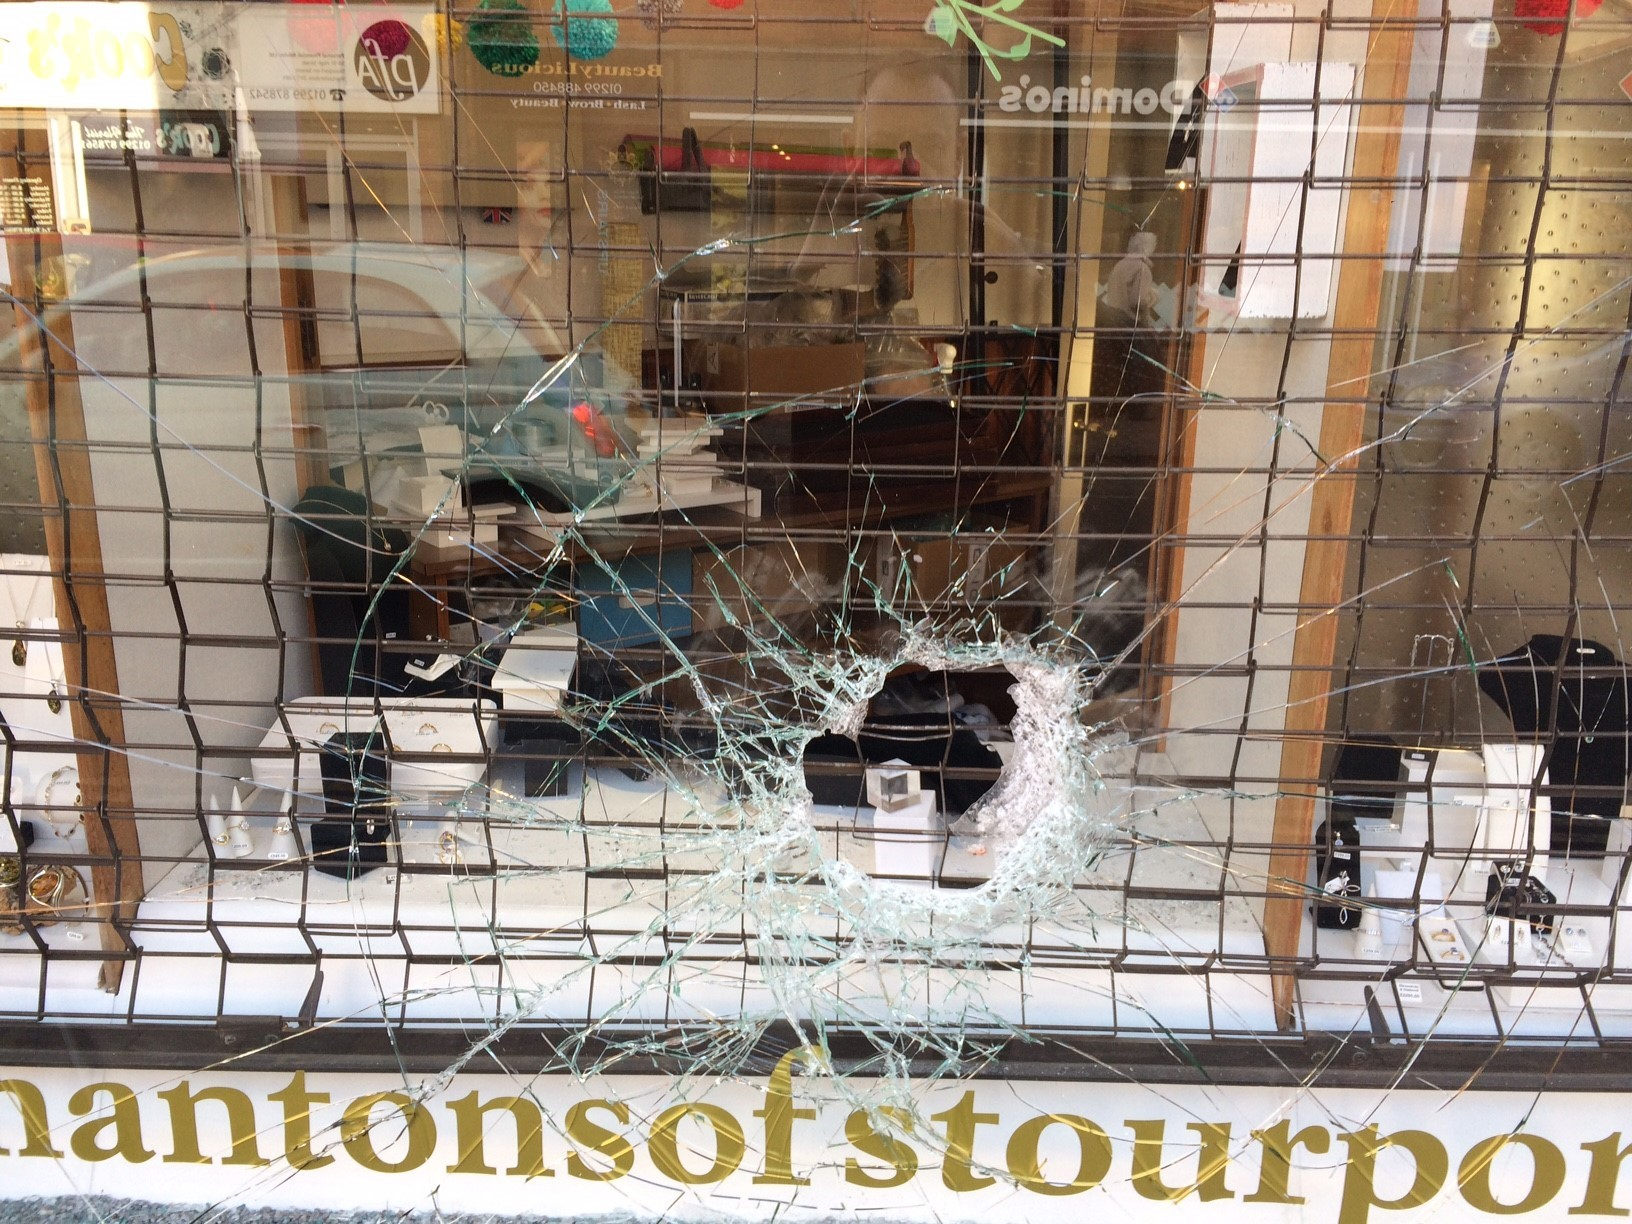 Smashed front window at  Mantons of Stourport